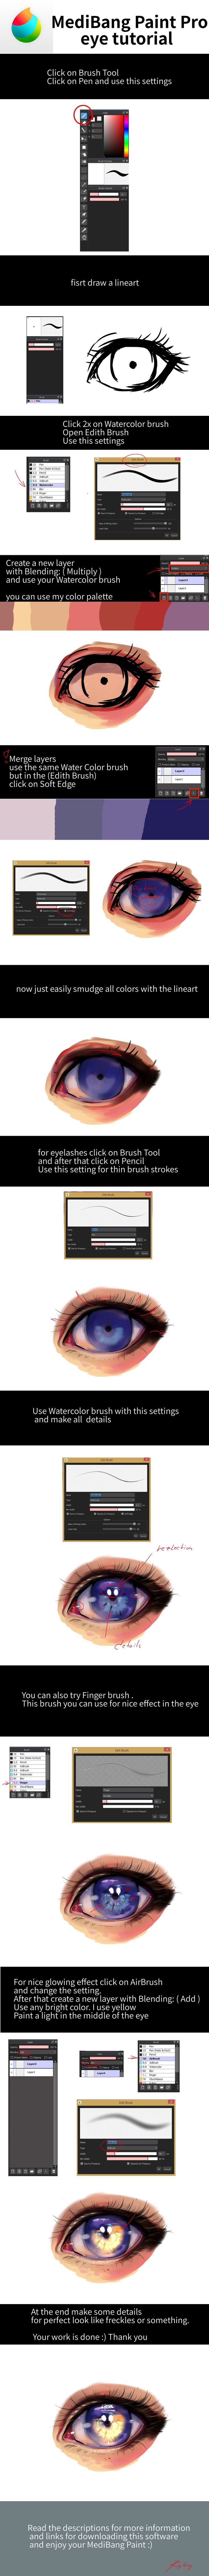 EASY EYE TUTORIAL by ryky.deviantart.com on @DeviantArt